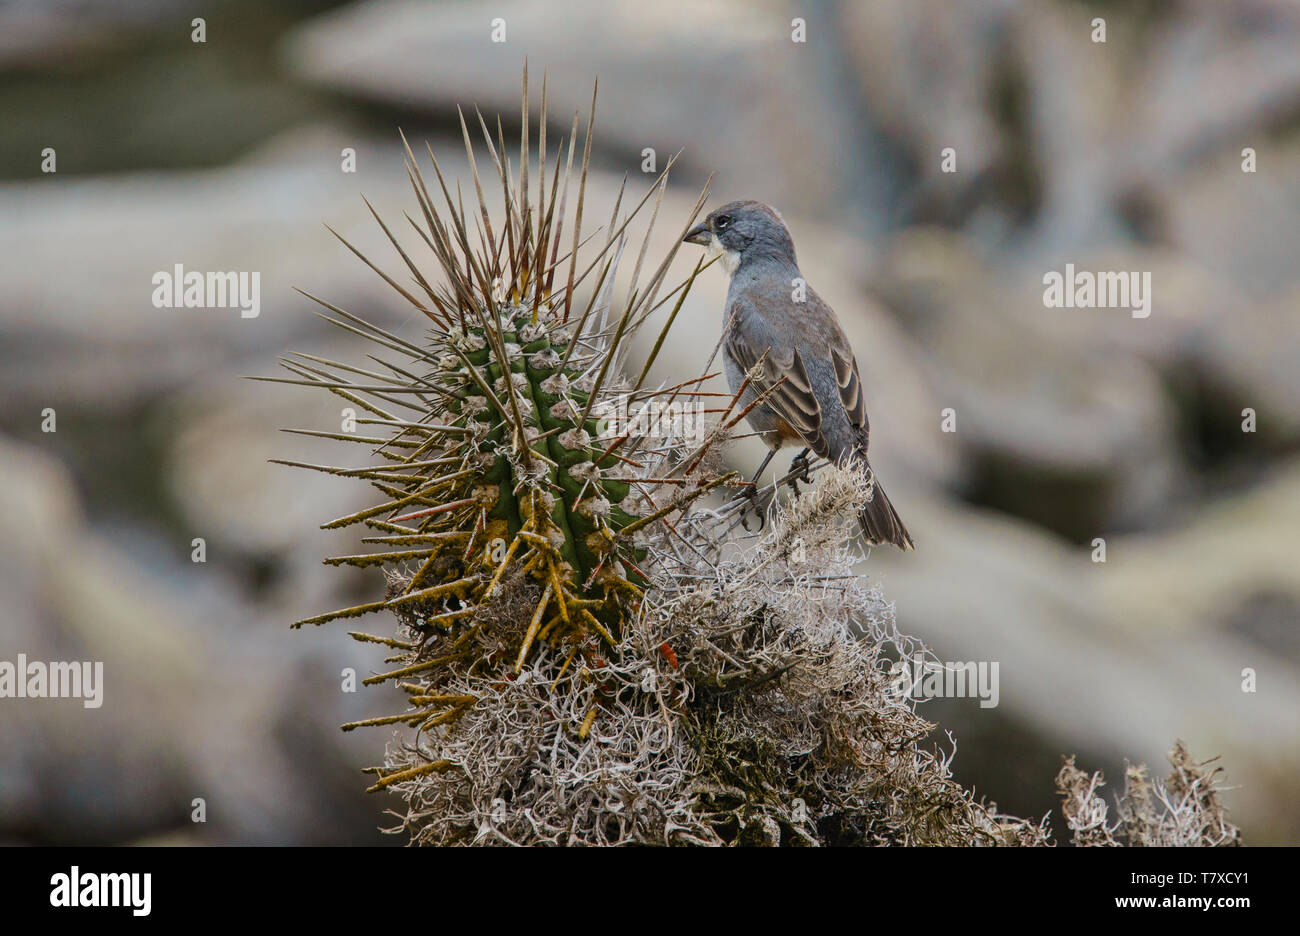 Andean sparrow (rufous-collared sparrow) on Isla Damas, Humboldt Penguin Reserve, Punta Choros, Chile Stock Photo